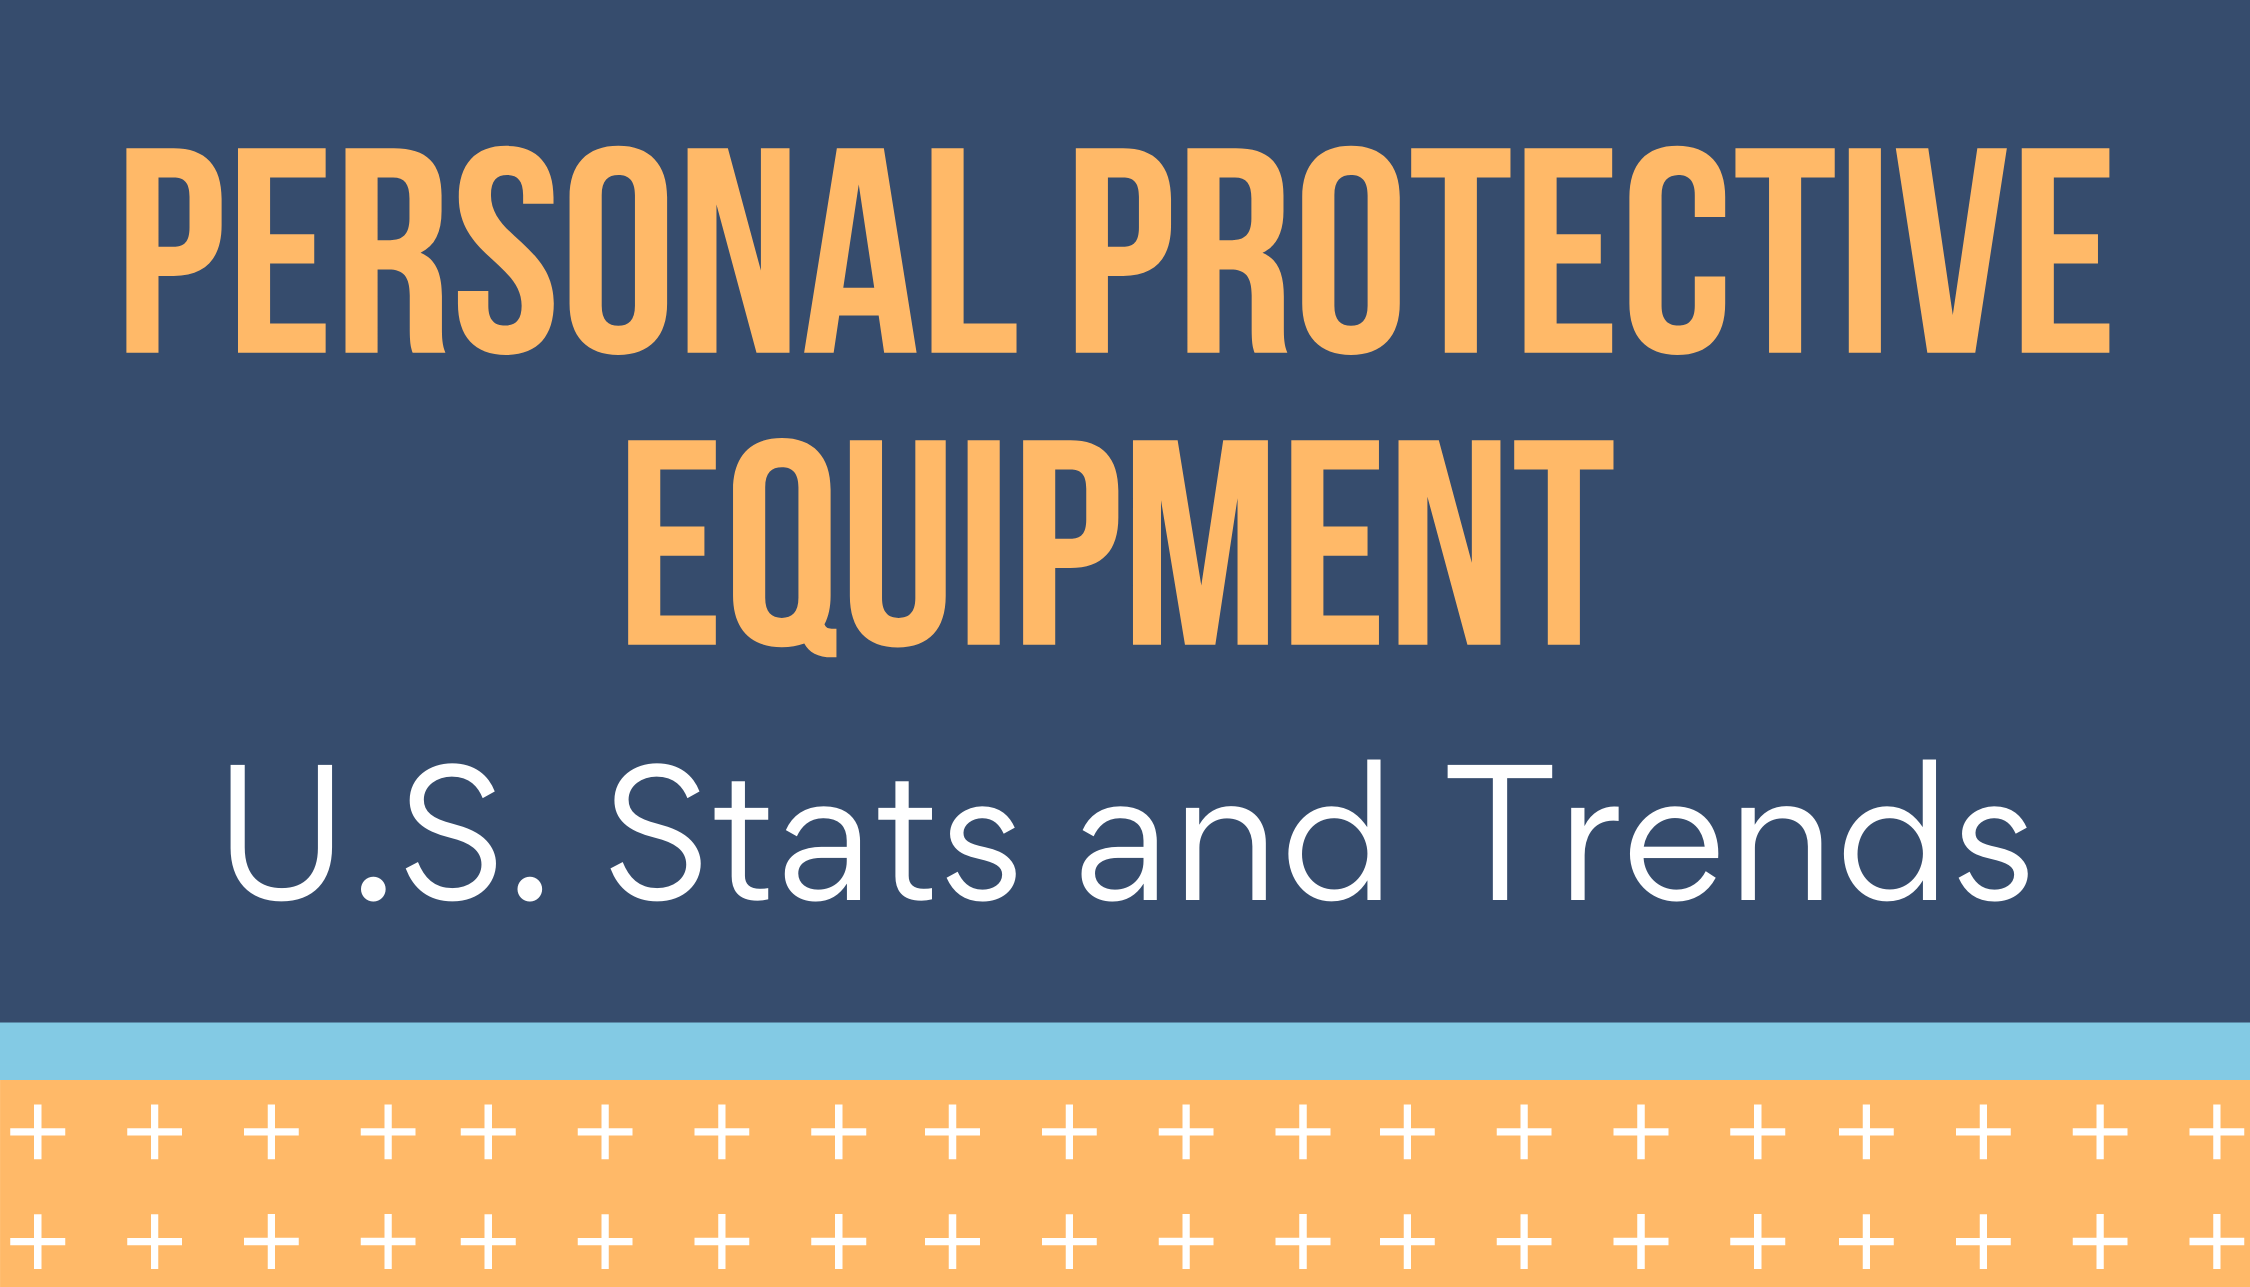 [Infographic] Personal Protective Equipment: U.S. Stats and Trends